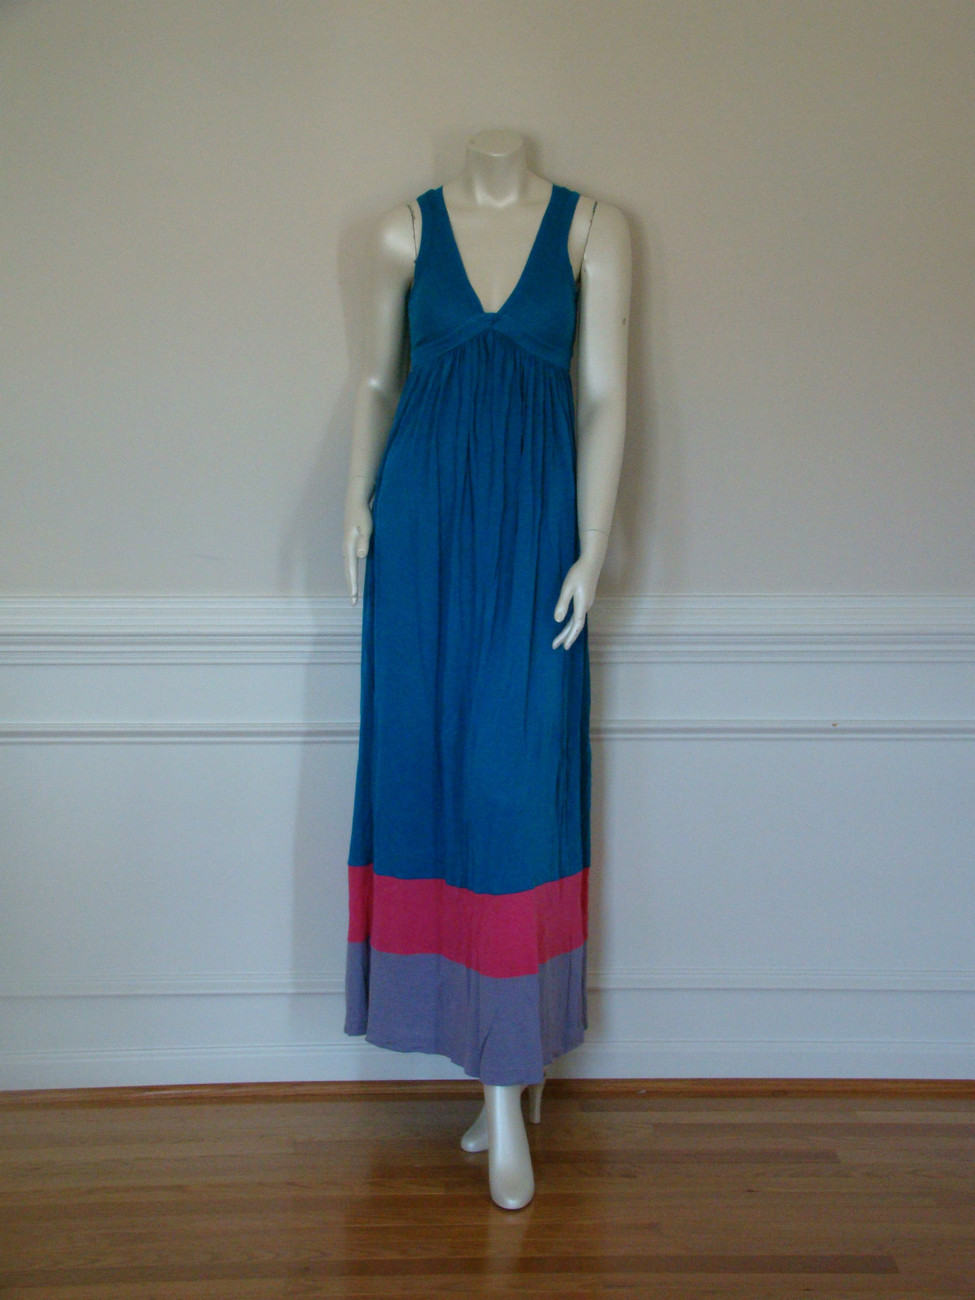 DIANE von FURSTENBERG KIWANA TEAL/HOT PINK/LILAC LONG GOWN - US SMALL